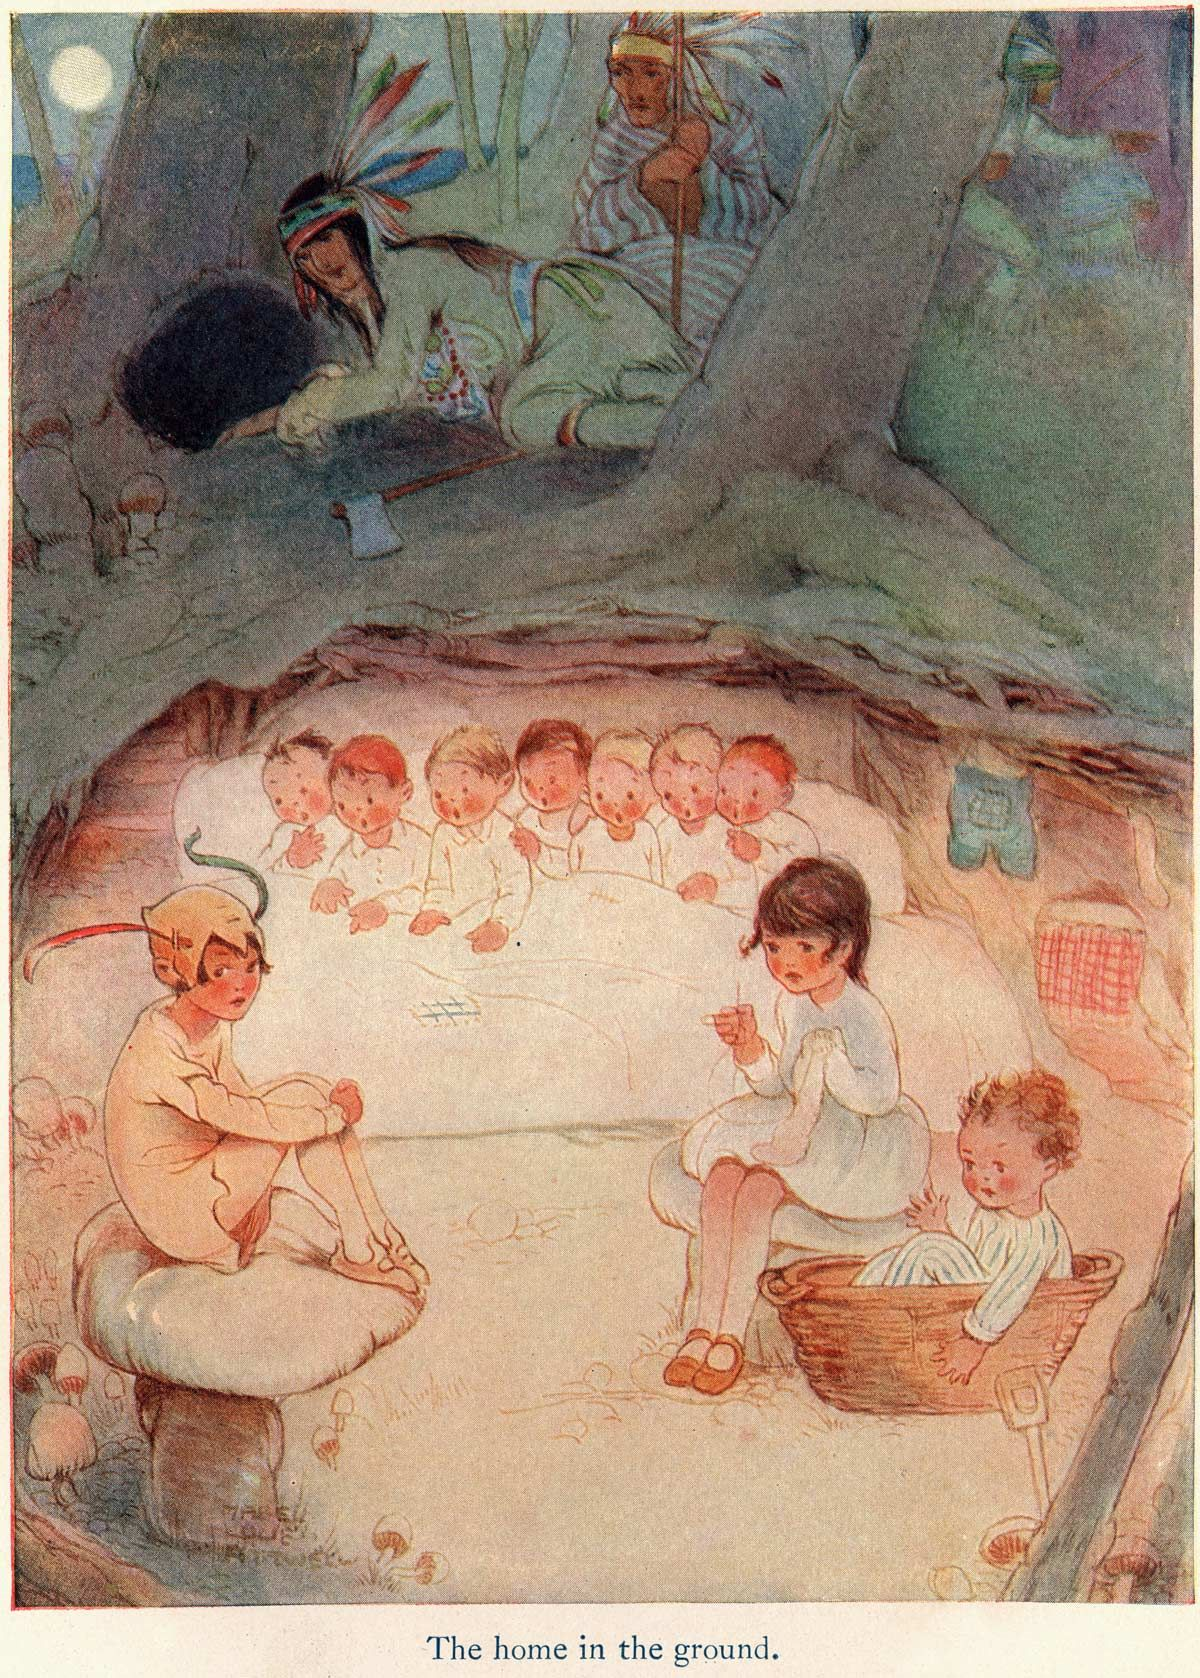 Mabel Lucie Attwell illustration of Peter Pan and Wendy